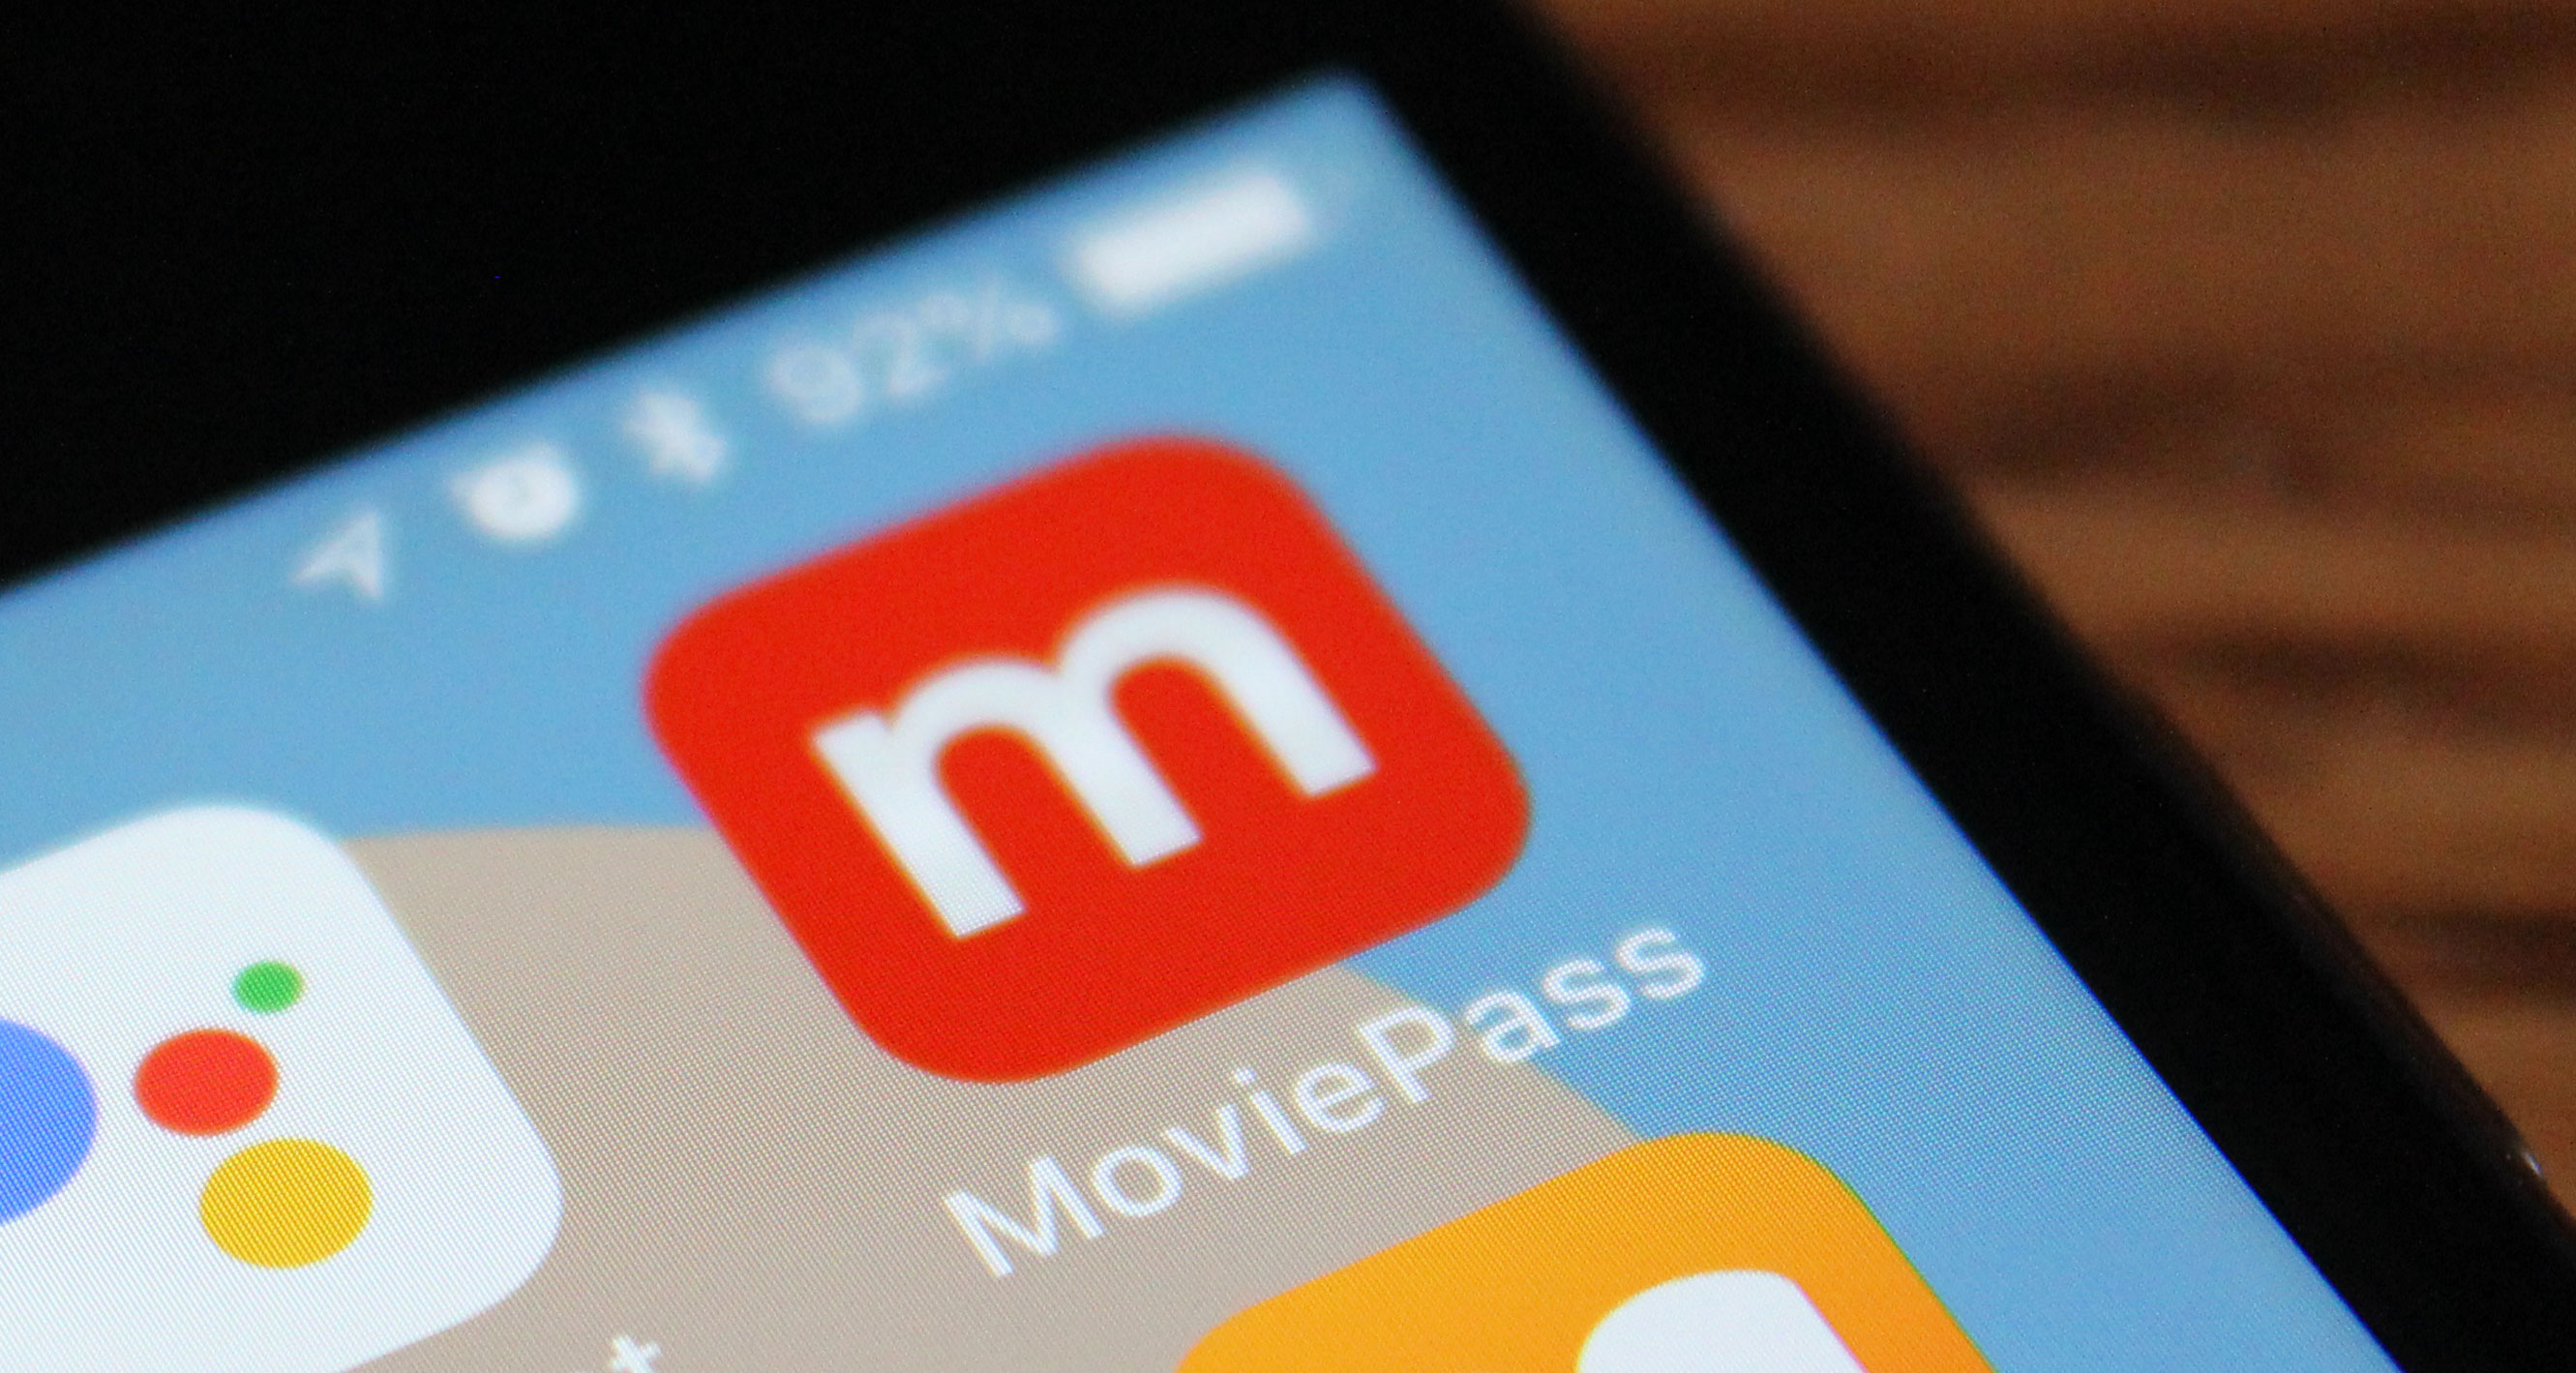 MoviePass starts surge pricing amid cash crunch and competition